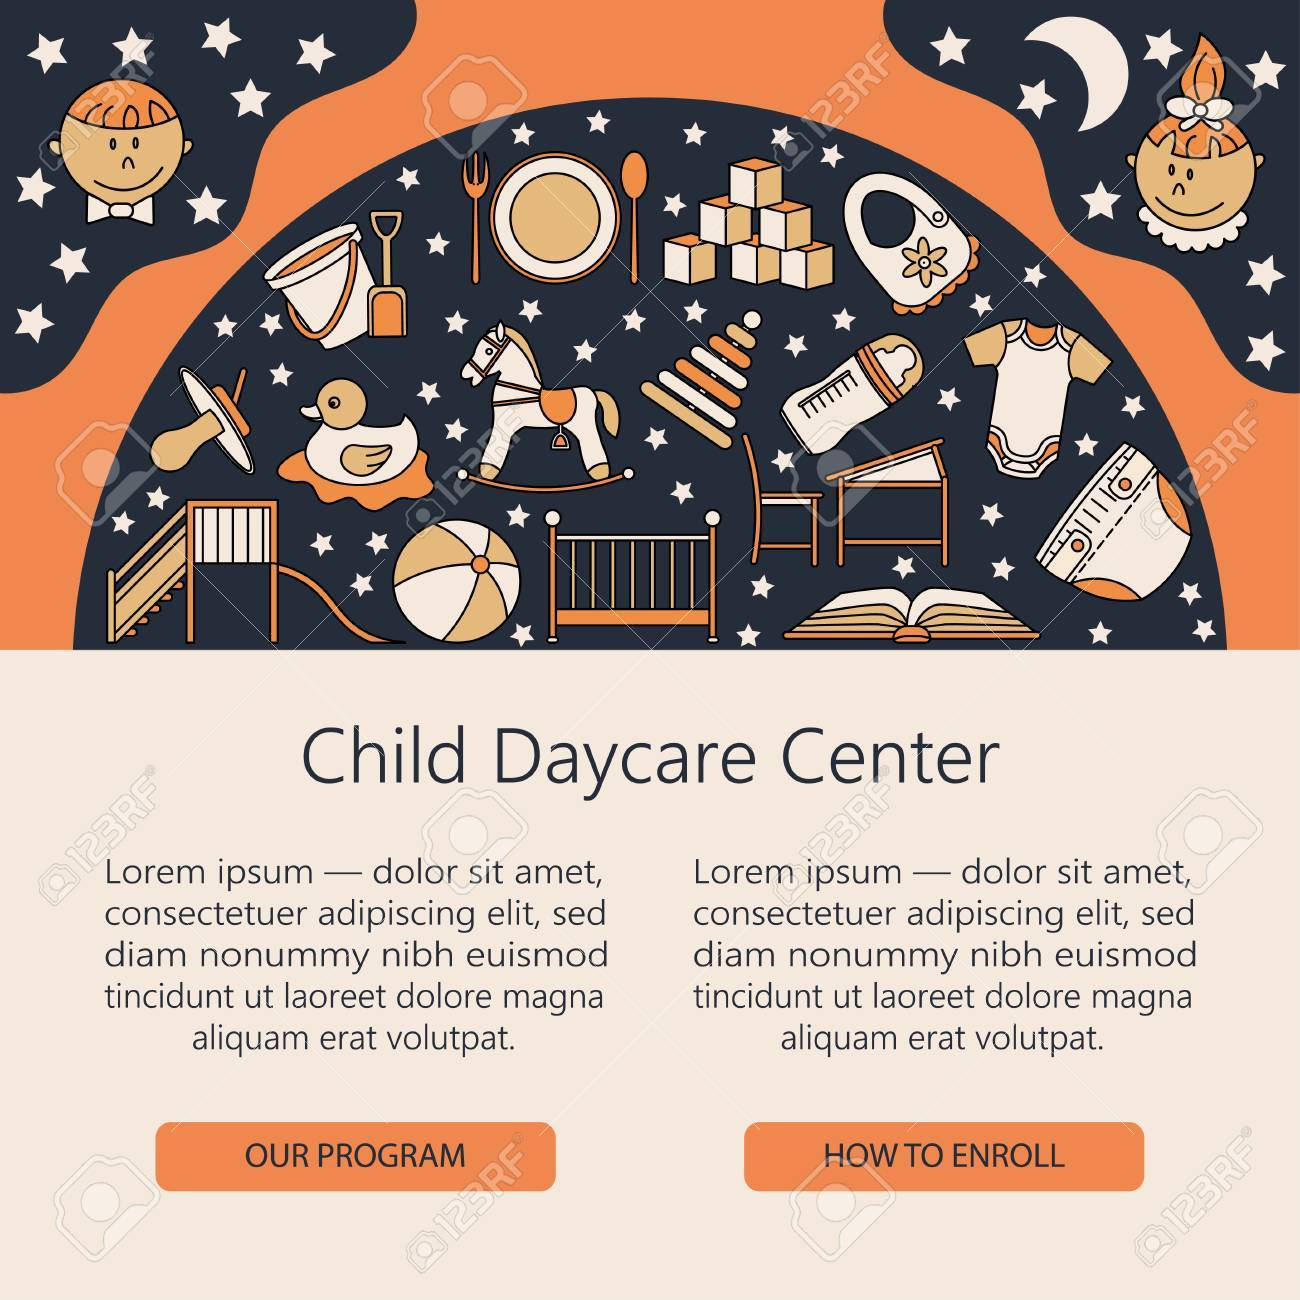 Baby cribs for daycare centers - Child And Baby Care Center Web Or Card Template With Kindergarten Vector Diaper Sandpit